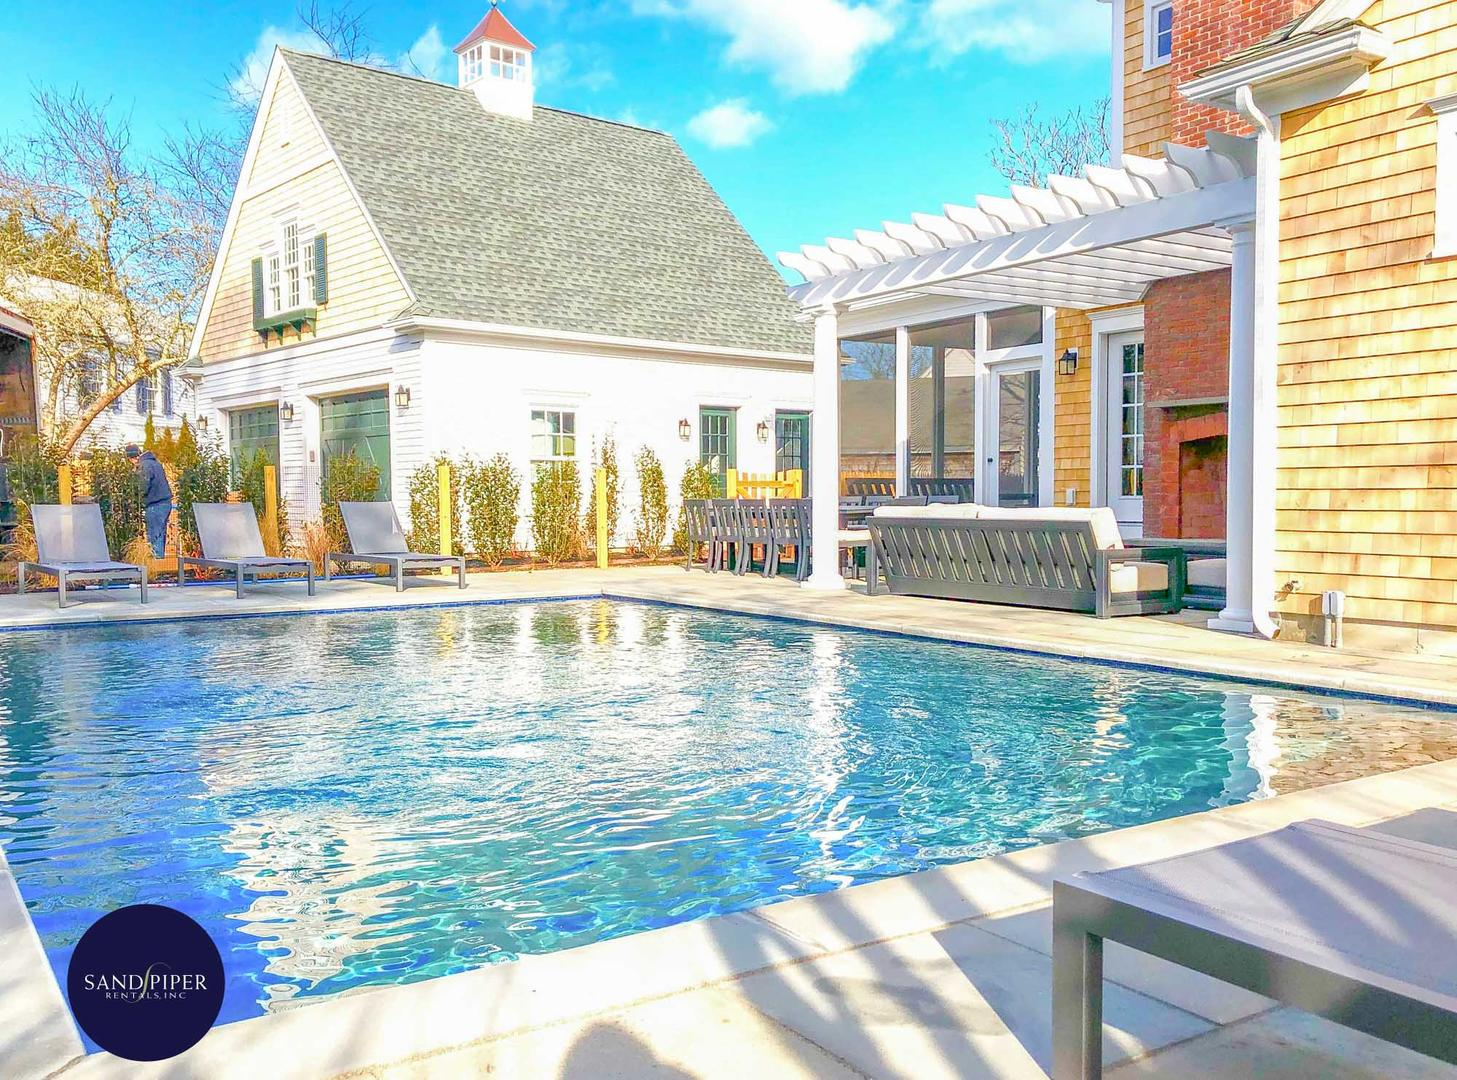 Perfect home for groups going to Marthas Vineyard 5 bedrooms sleeps 14 with pool